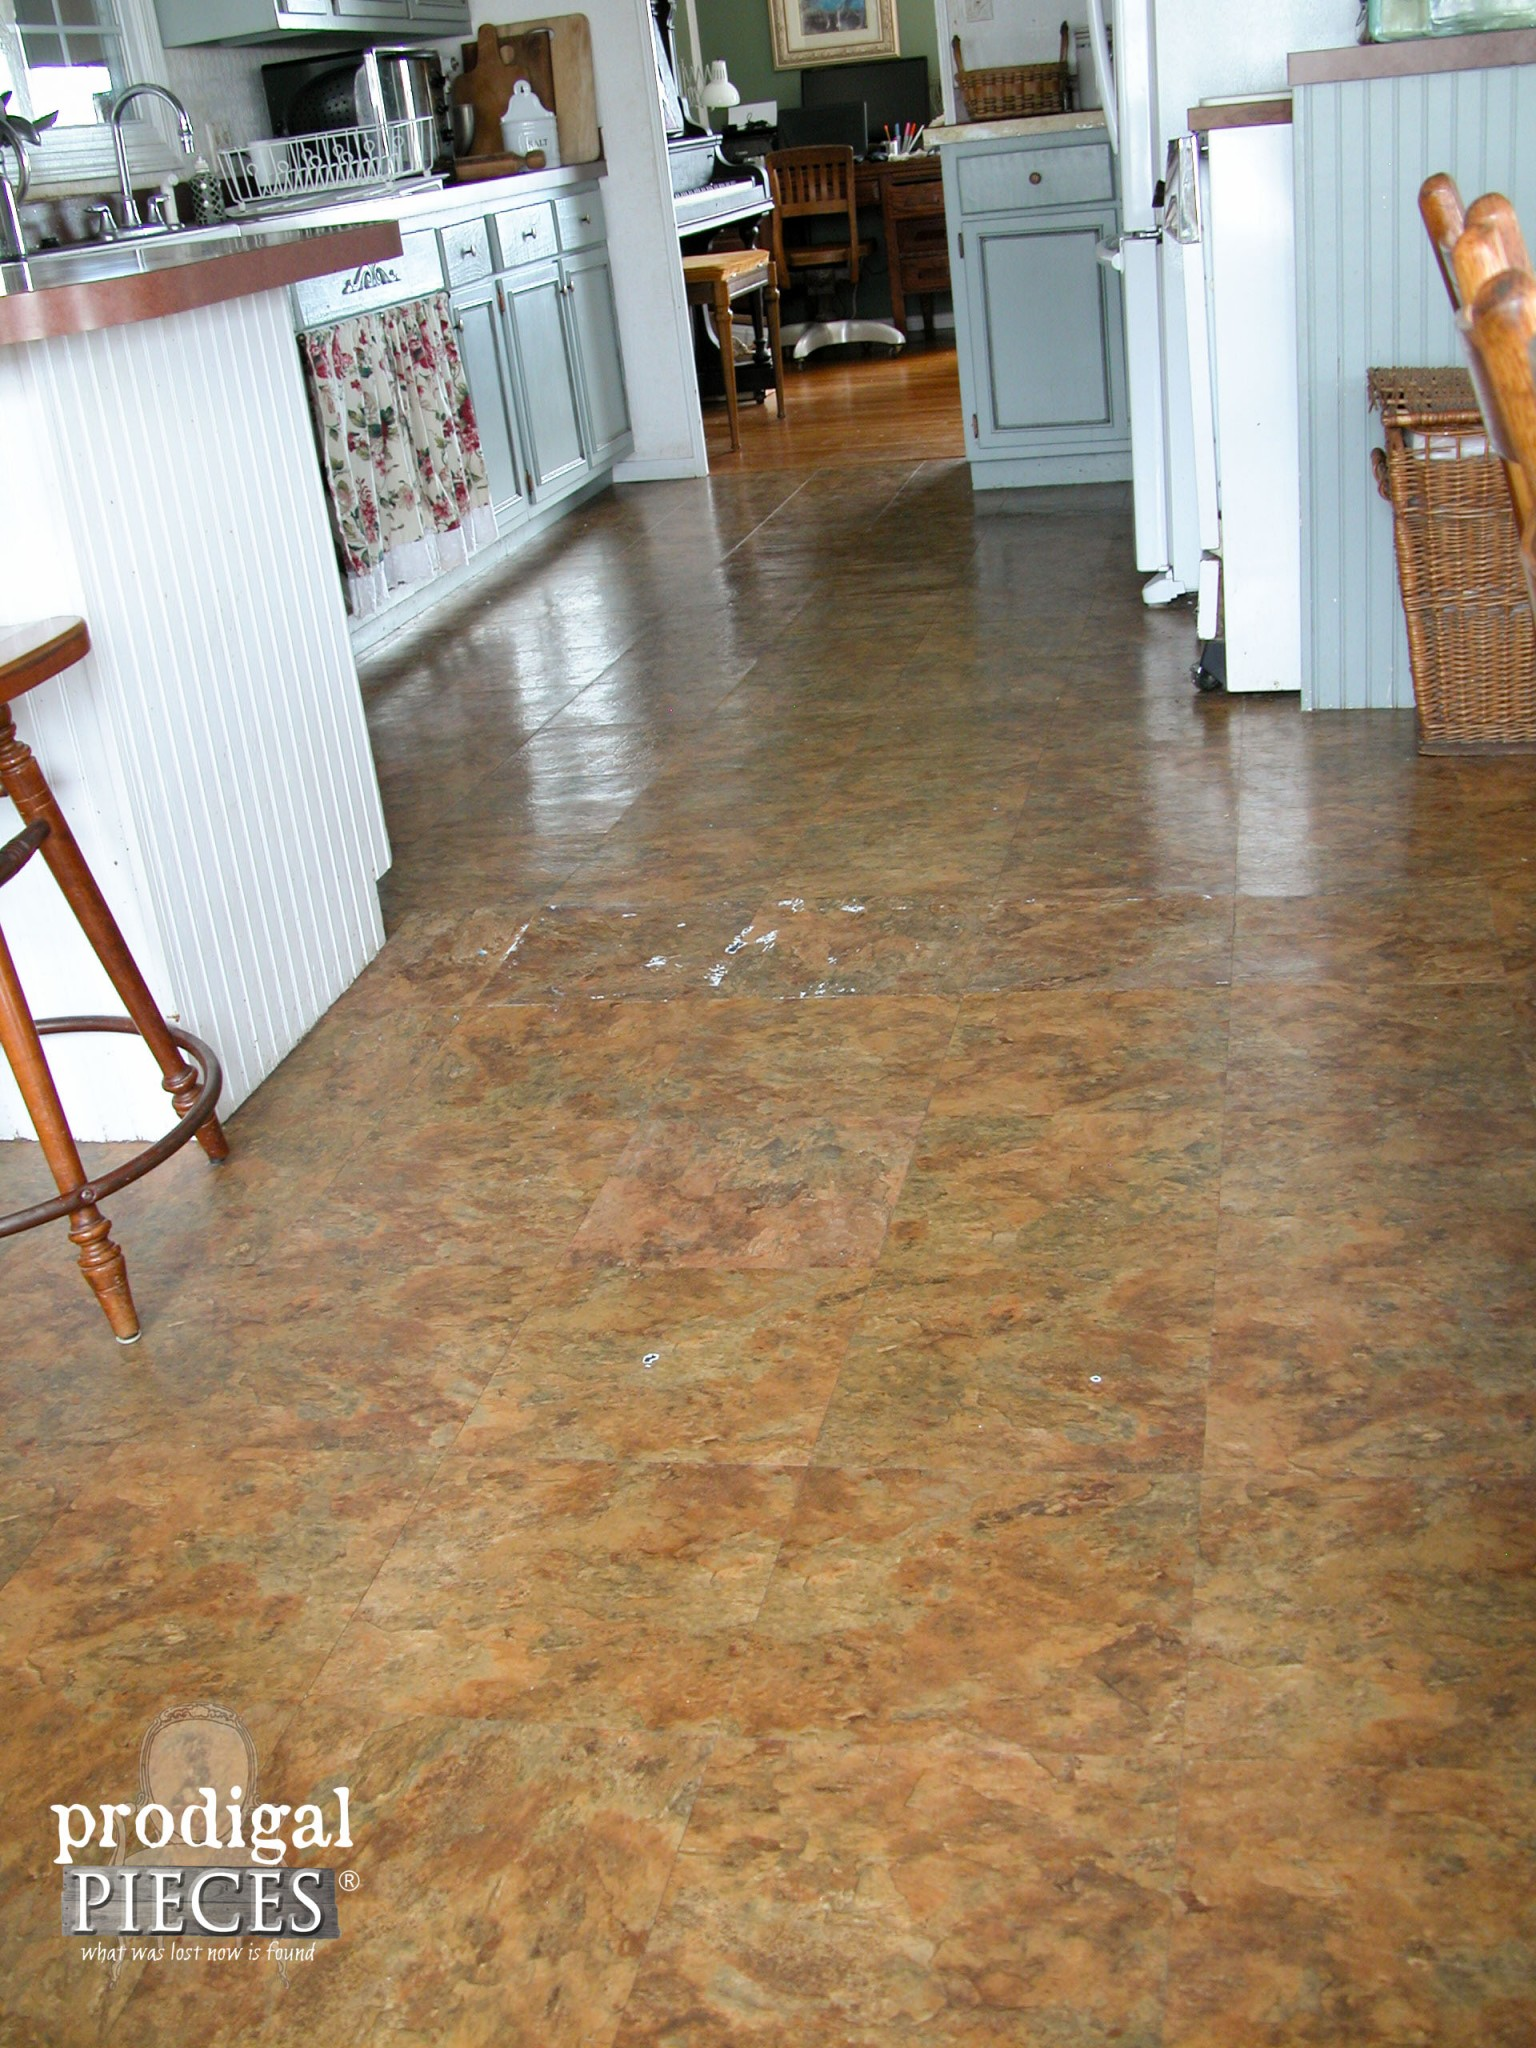 Old Vinyl Flooring in Kitchen | prodigalpieces.com